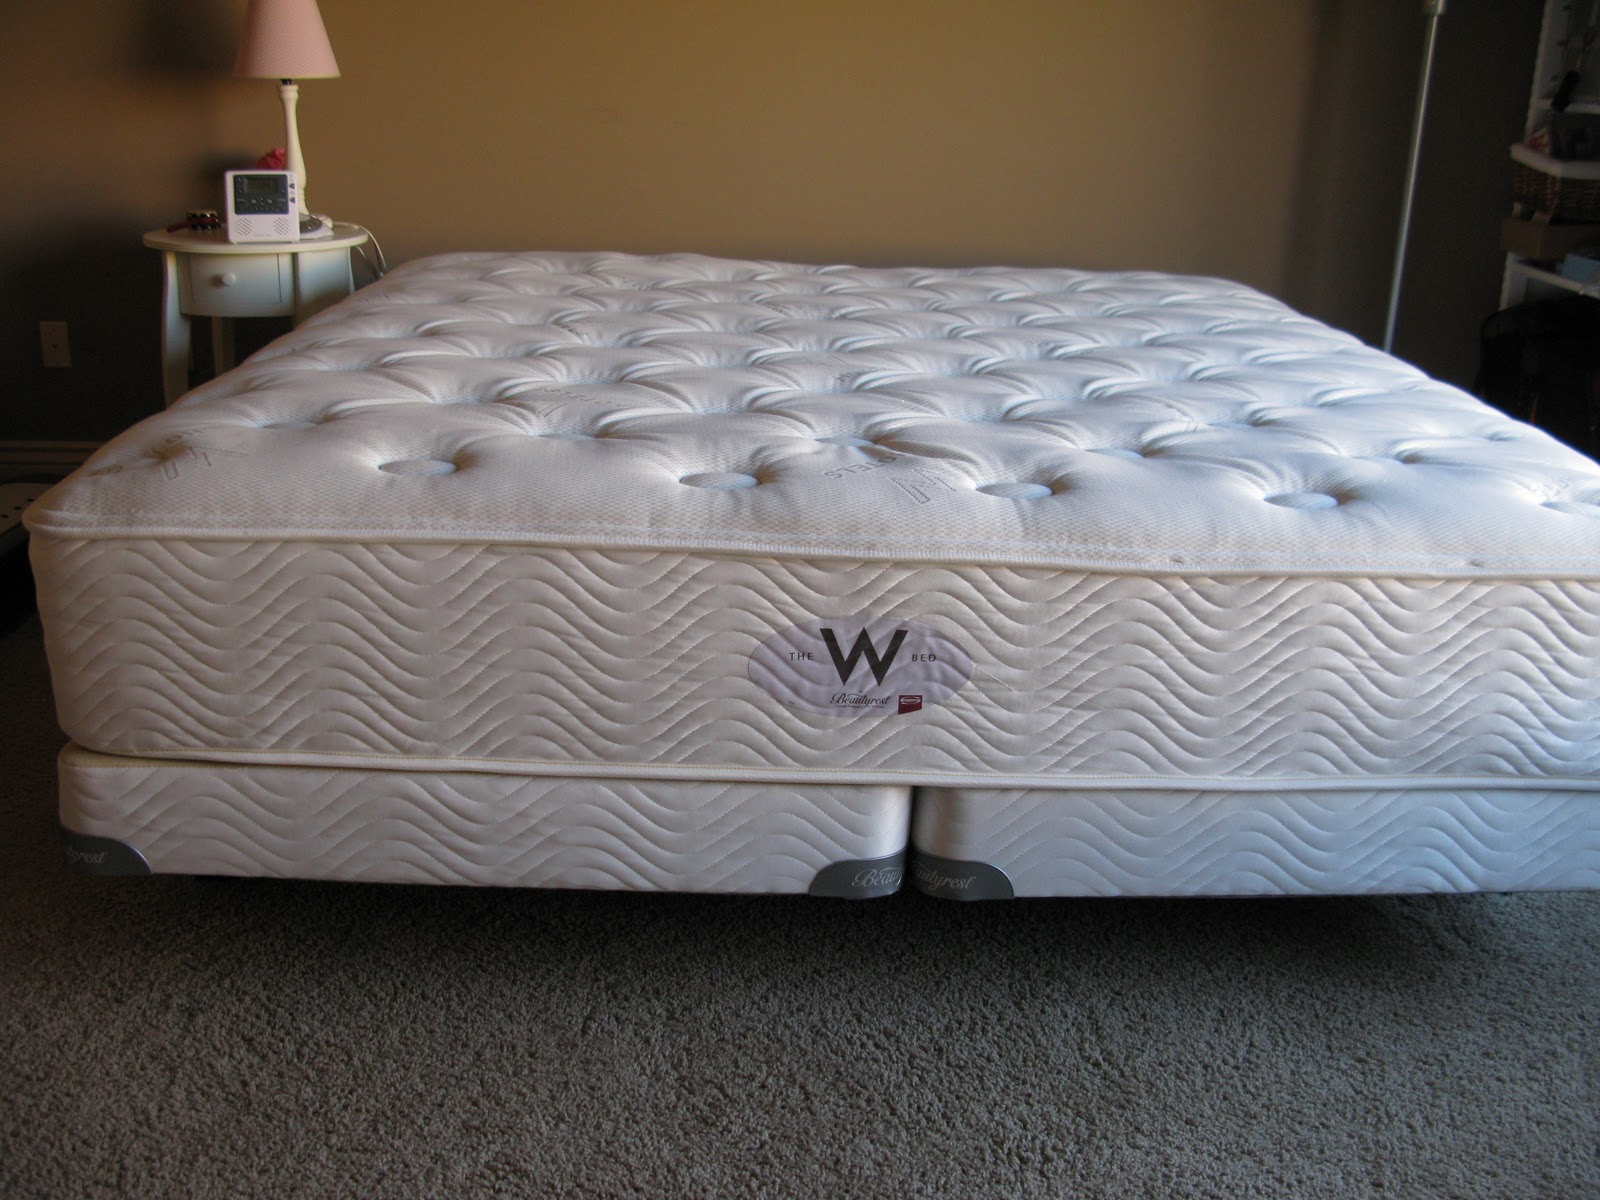 Mattress In W Hotel Pictures